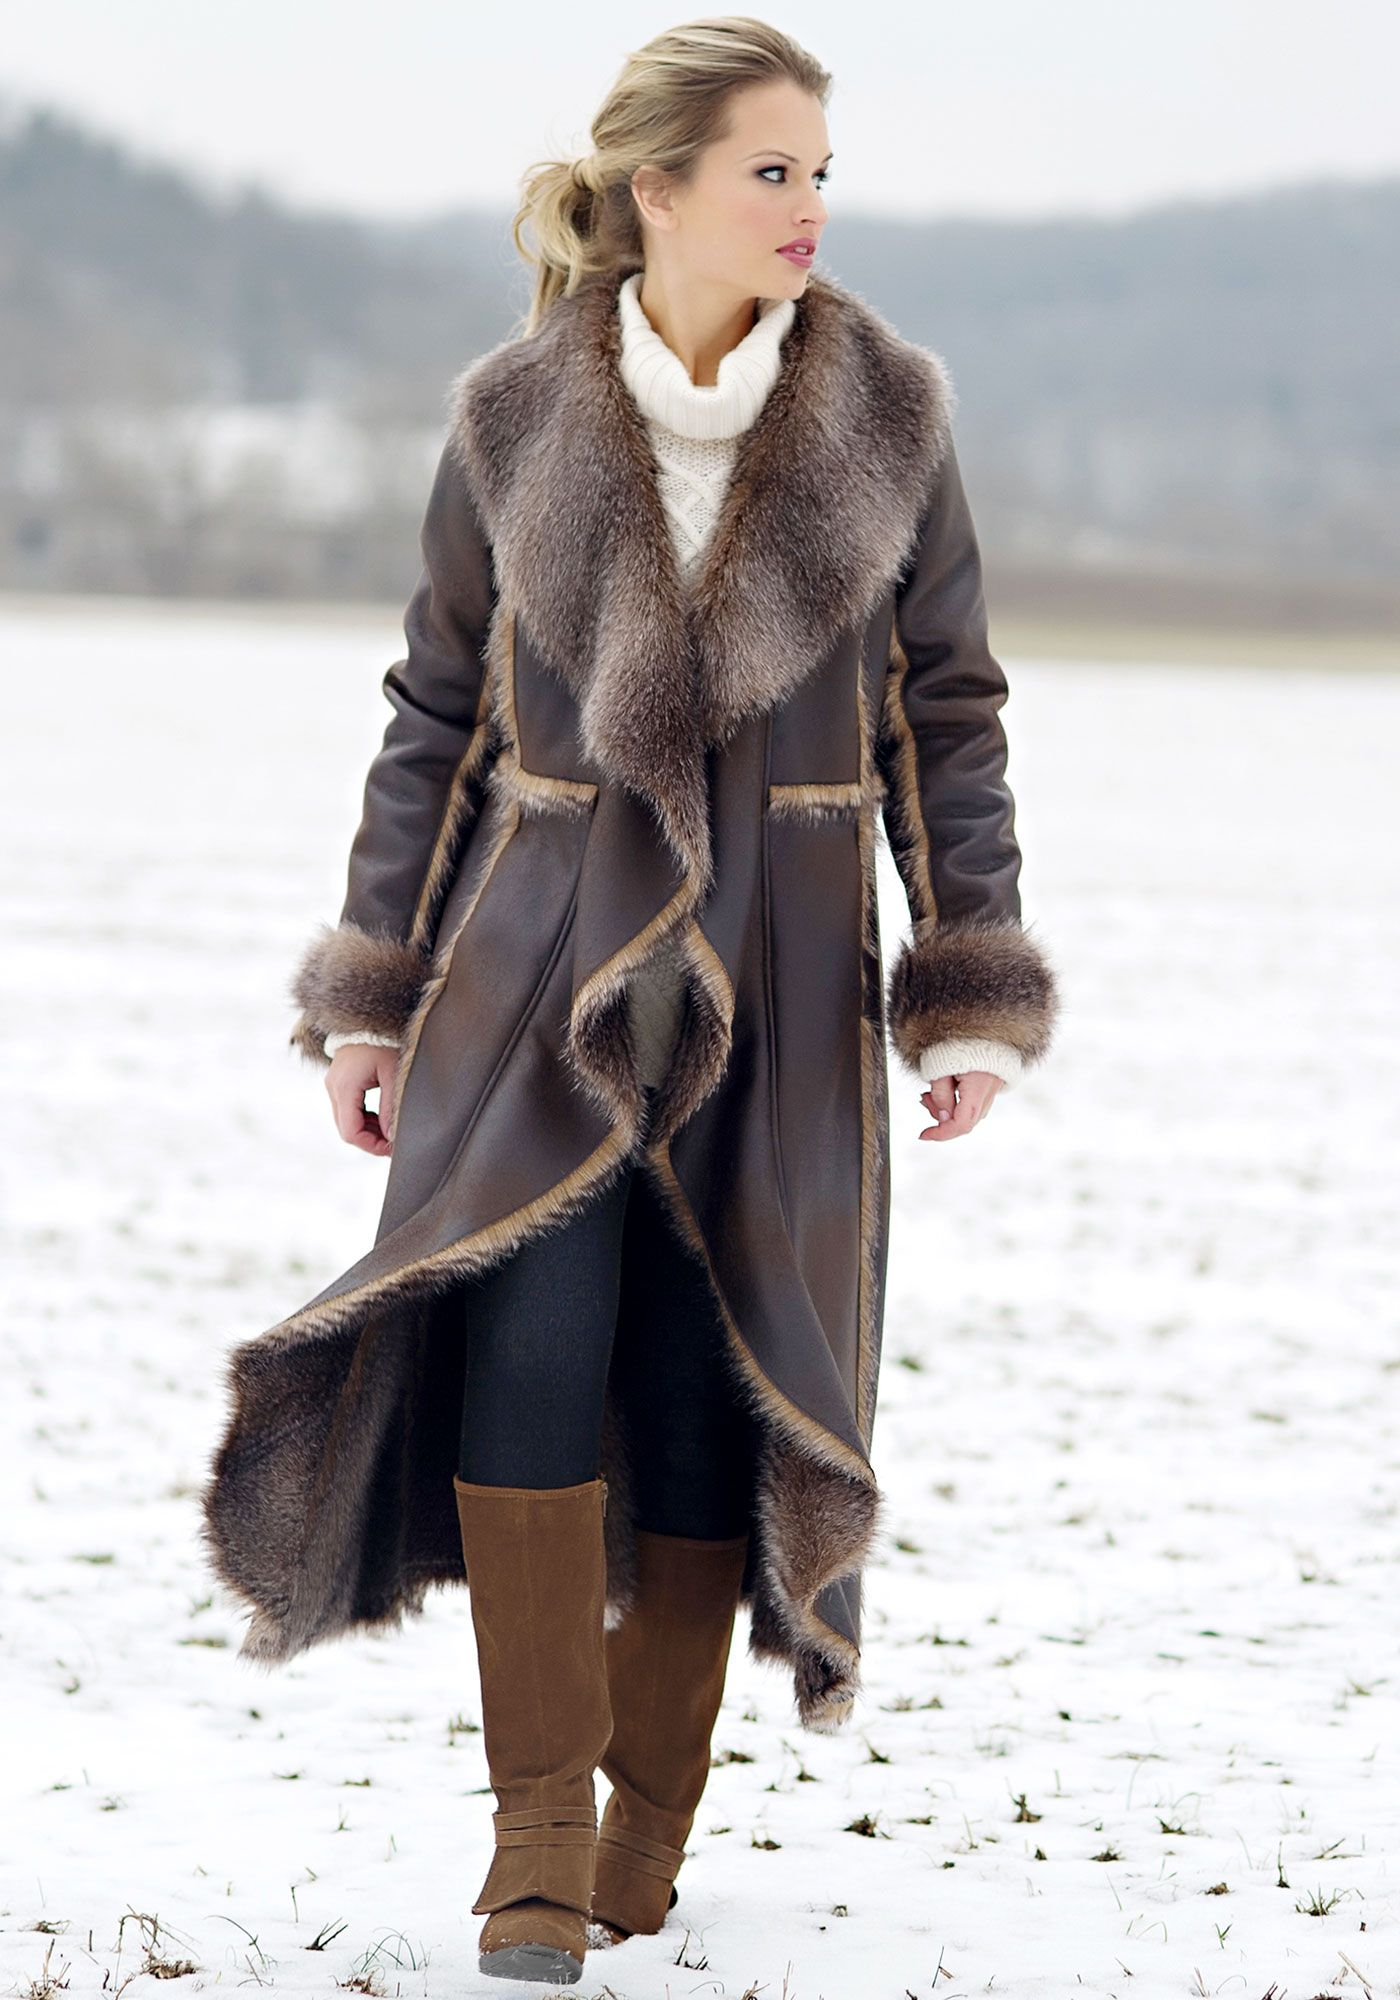 10 Best images about Faux Fur on Pinterest | Coats Taupe and